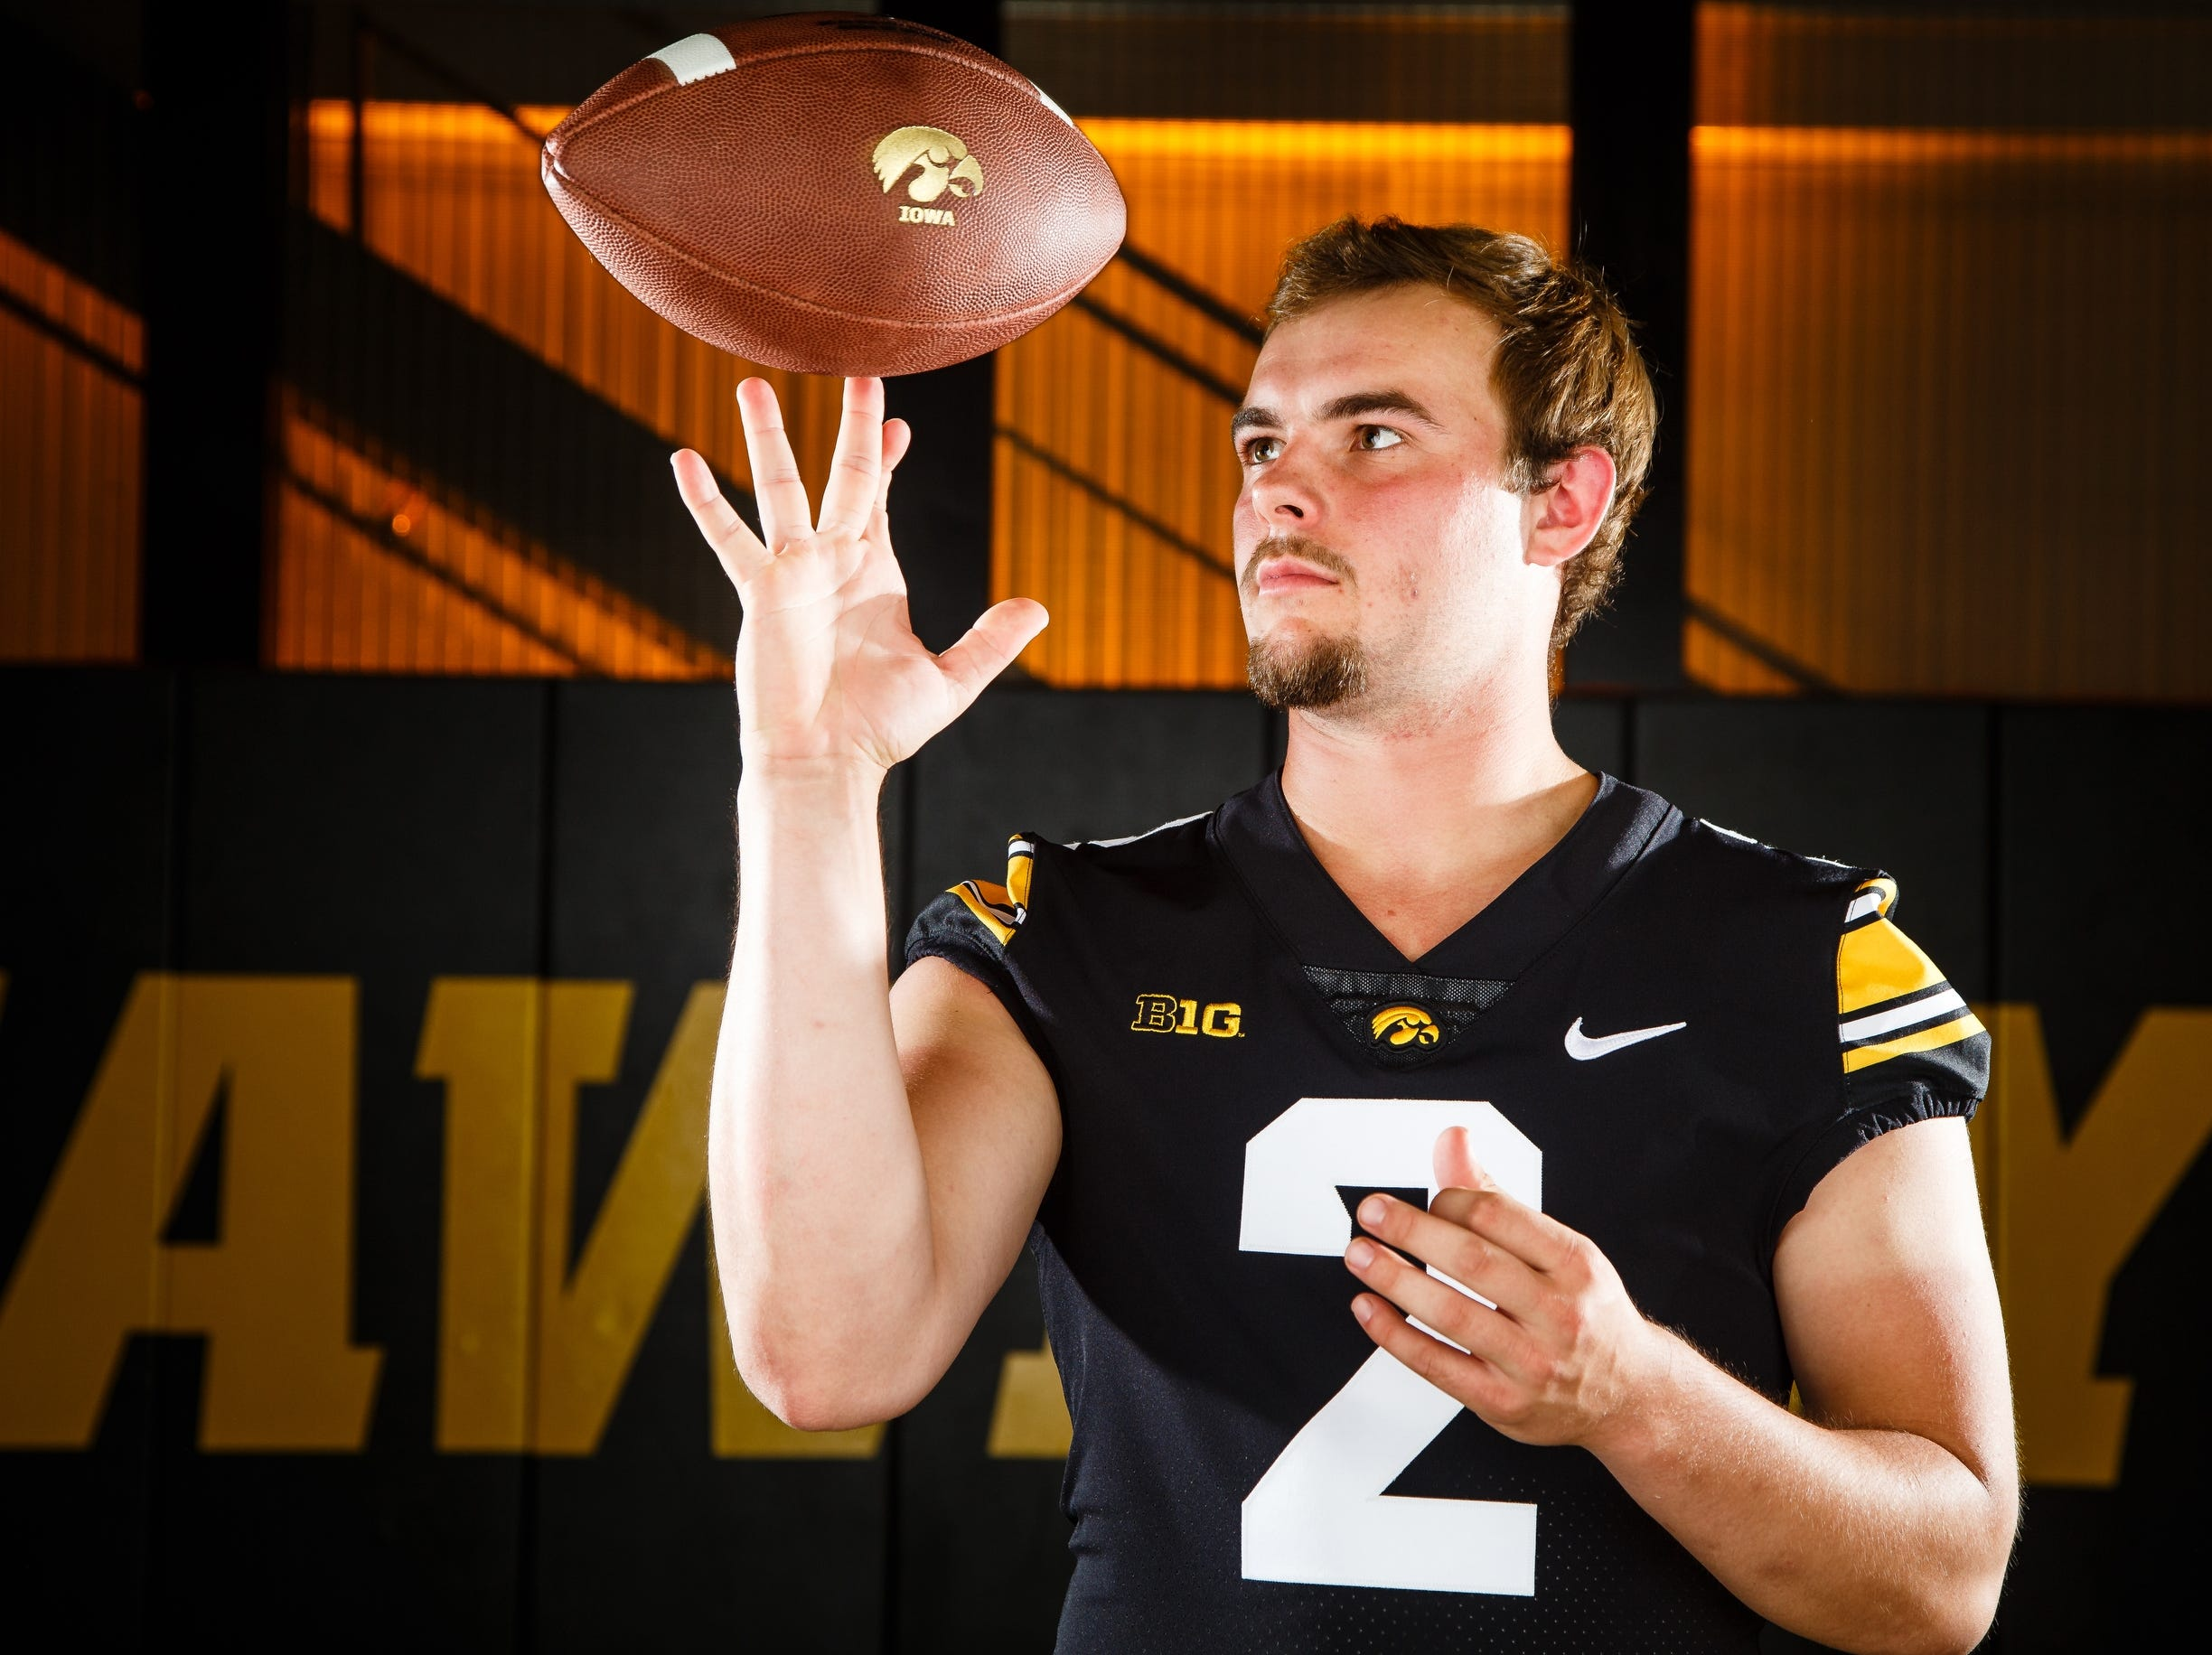 Iowa's Peyton Mansell poses for a photo during the Iowa Football media day on Friday, Aug. 10, 2018 in Iowa City.